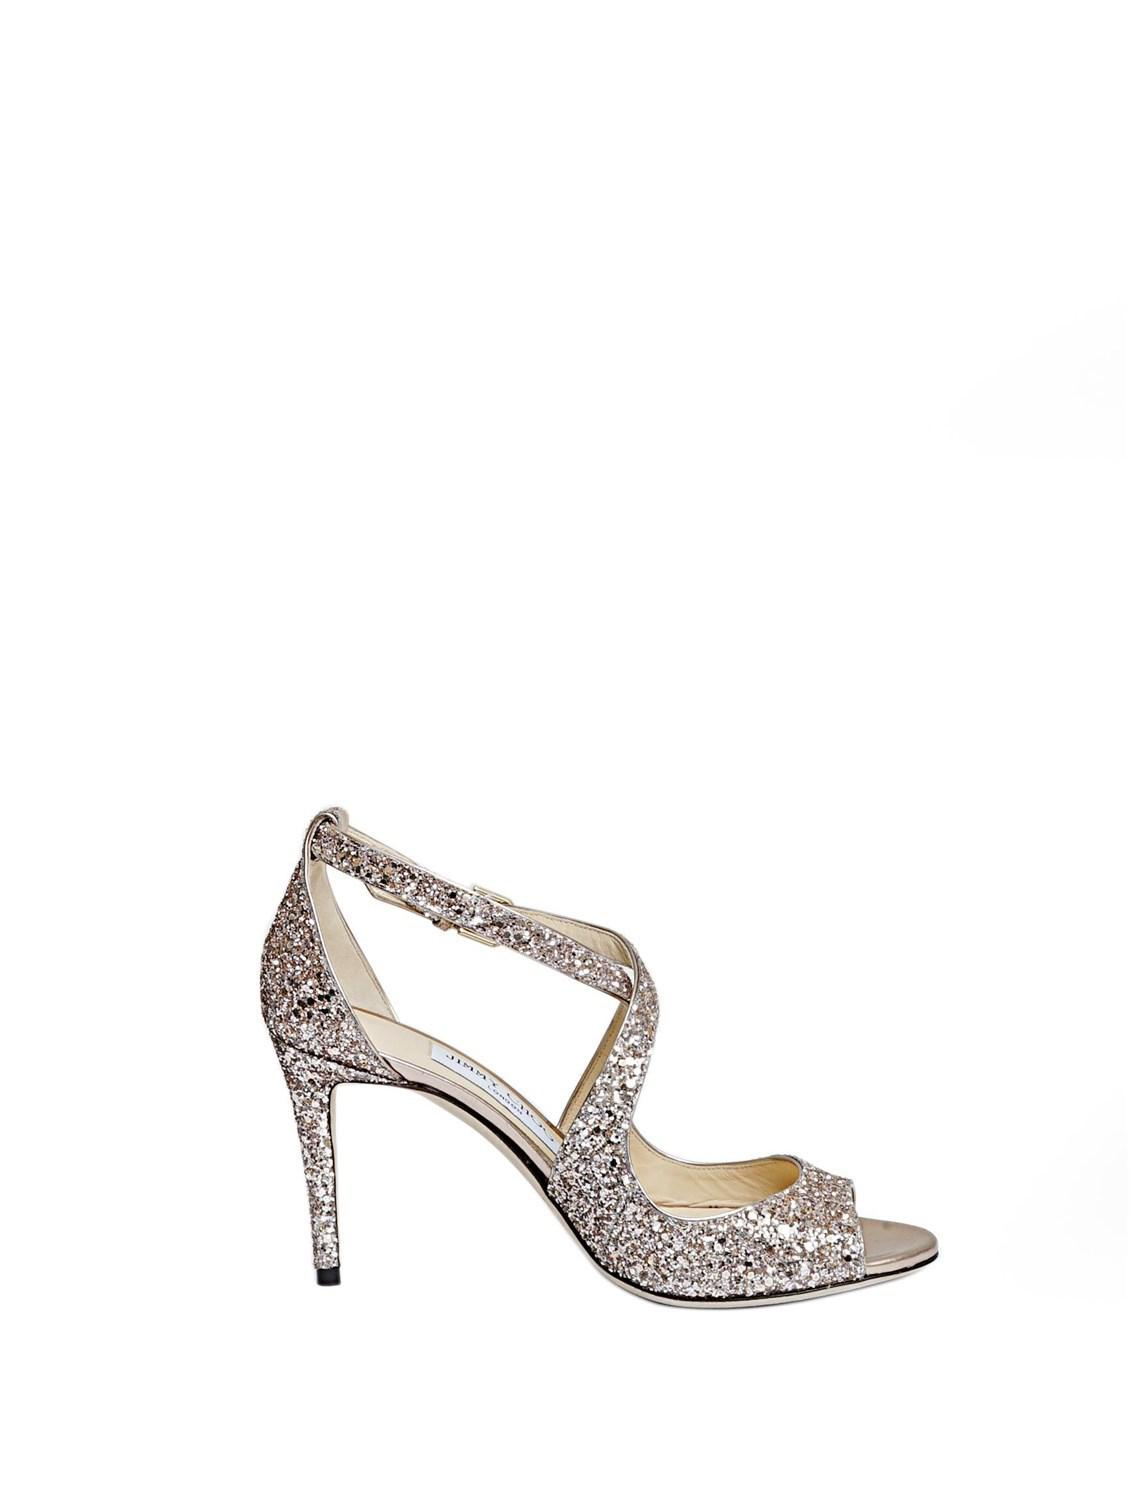 6507e237c7fb2 Gallery. Previously sold at  Reebonz · Women s Jimmy Choo Glitter ...